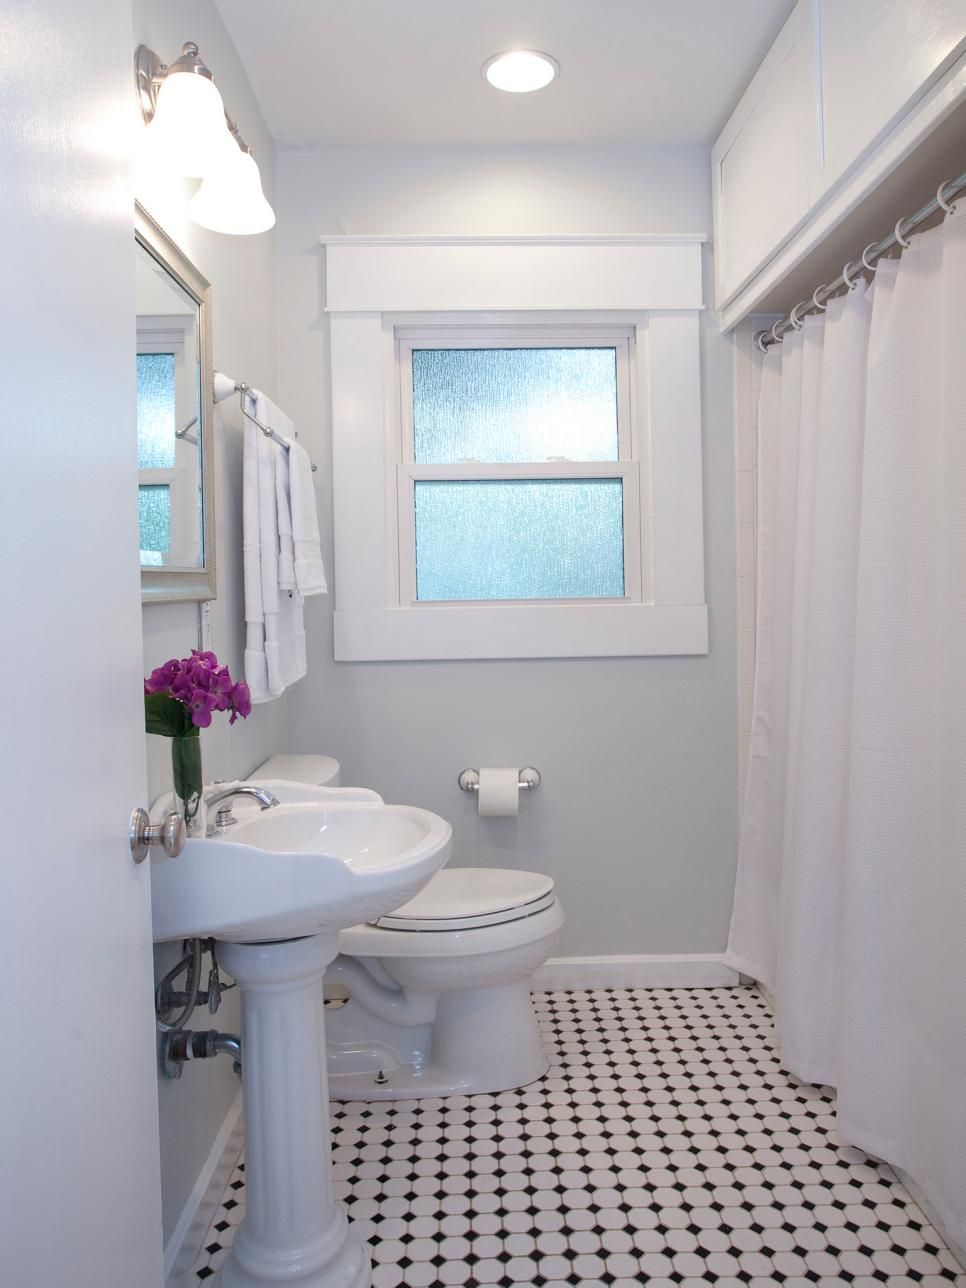 Before And After 30 Incredible Small Bathroom Makeovers Small Bathroom Bathroom Design Bathroom Design Small